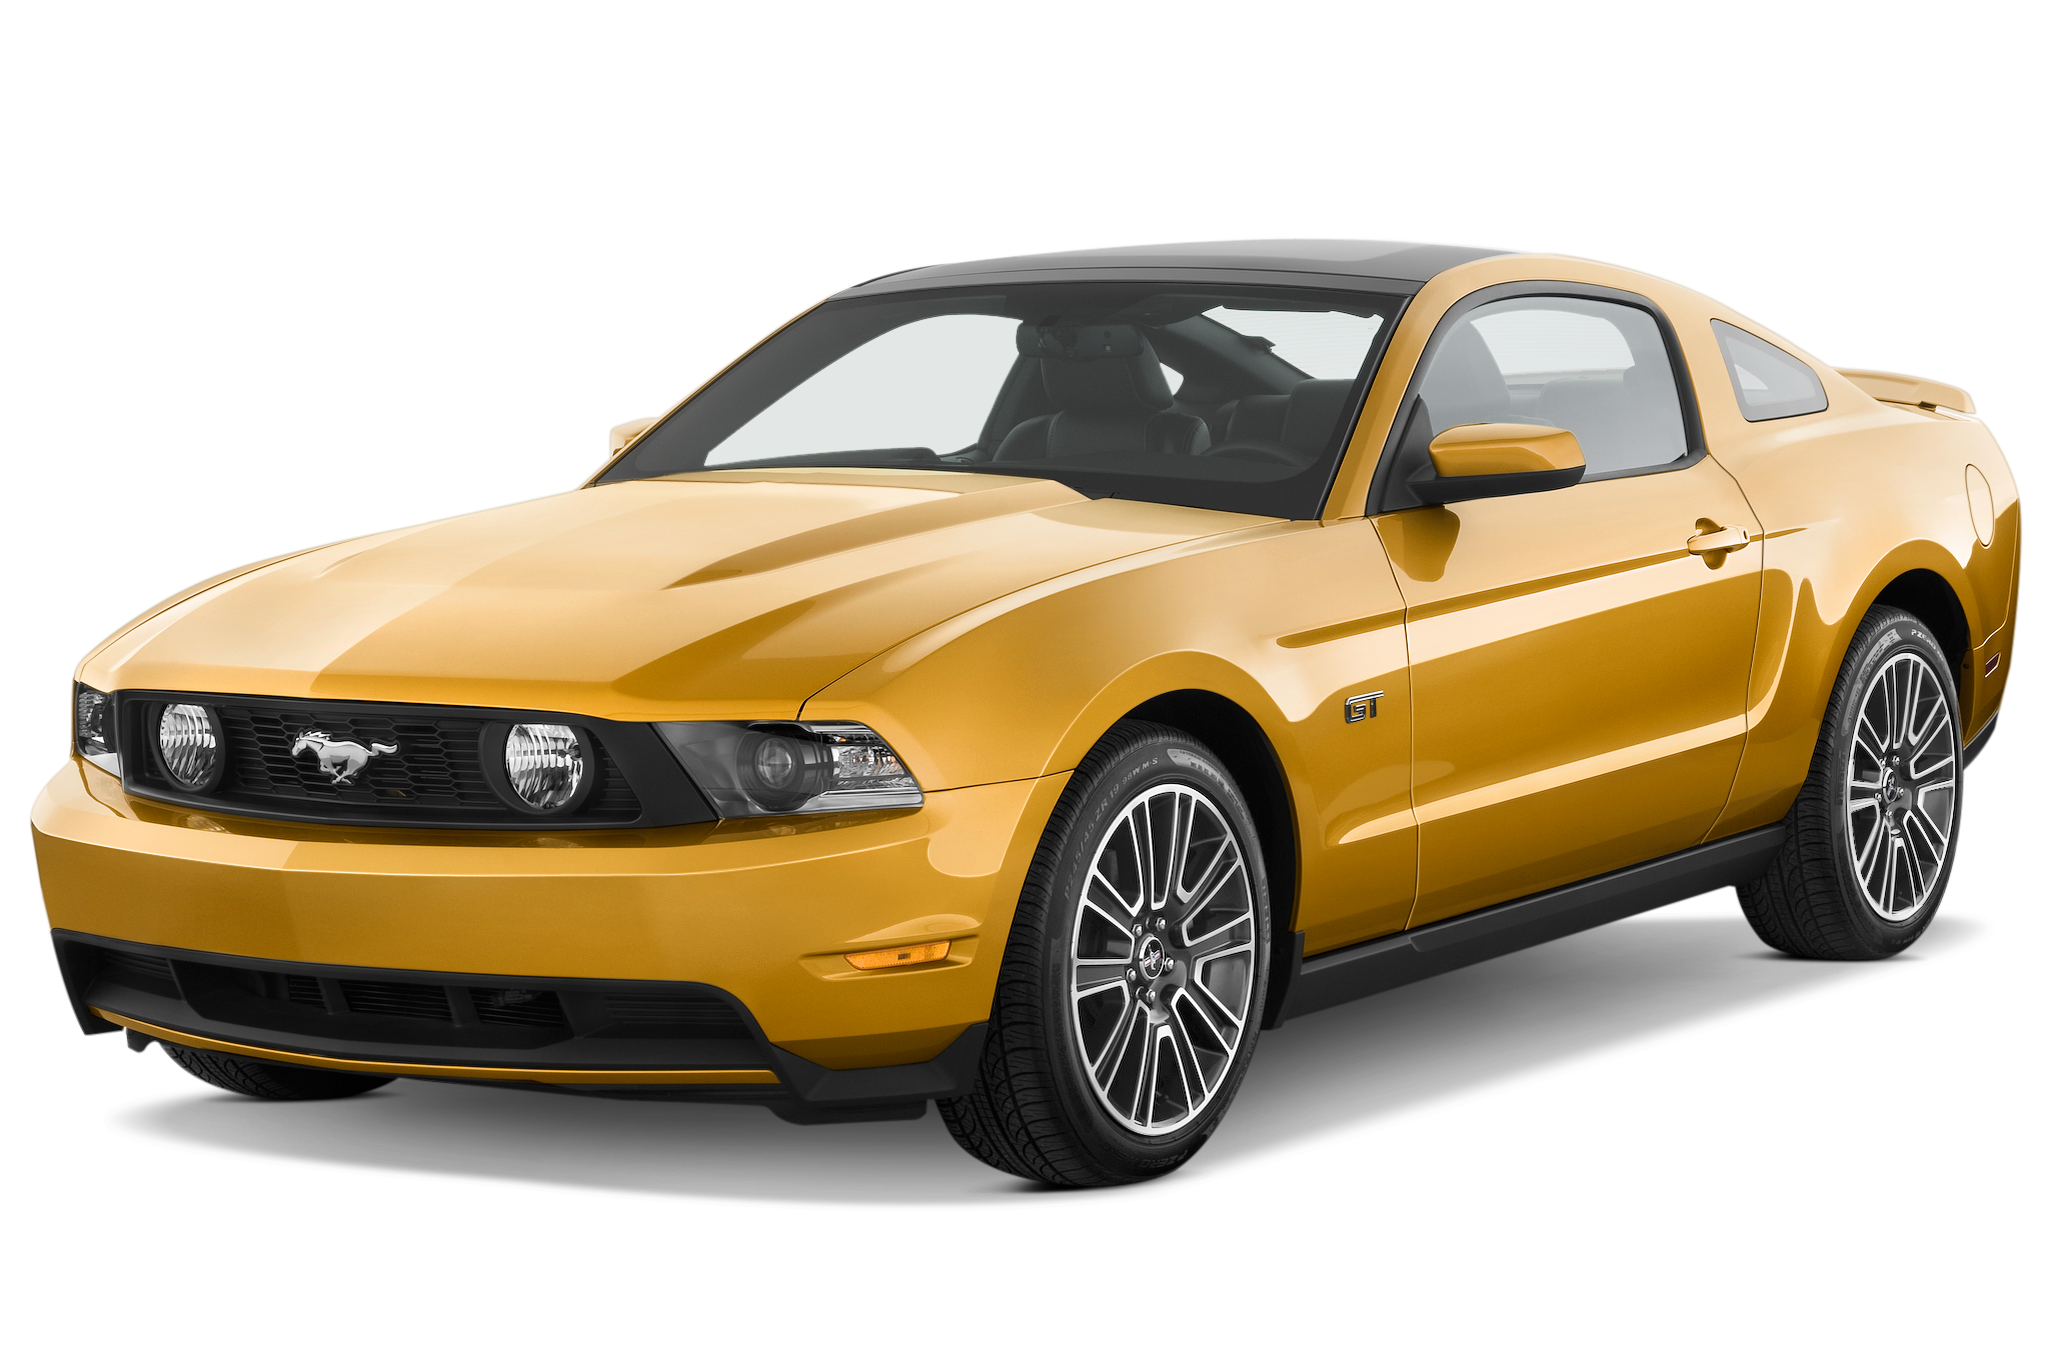 2010 Ford Mustang Gt Premium Convertible Ford